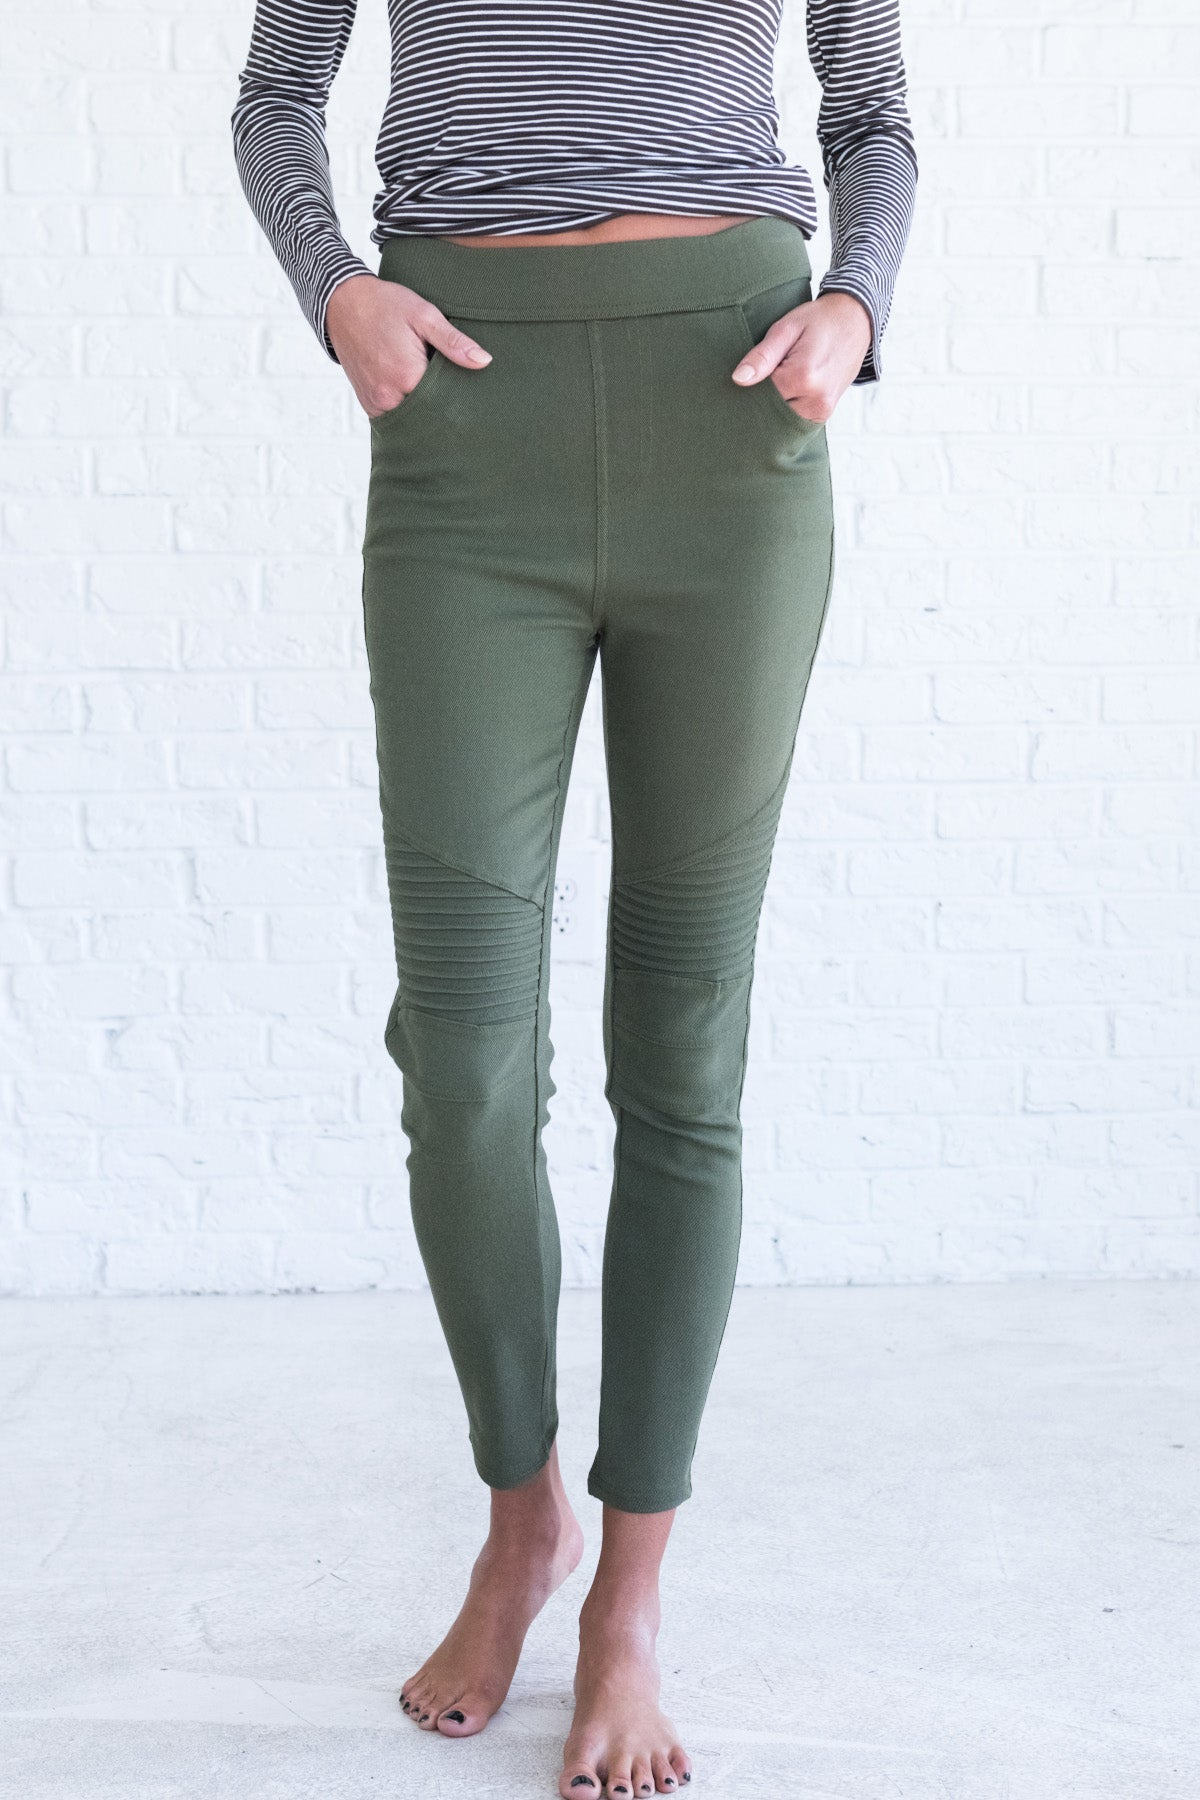 Olive Green Moto Style Jeggings for Women